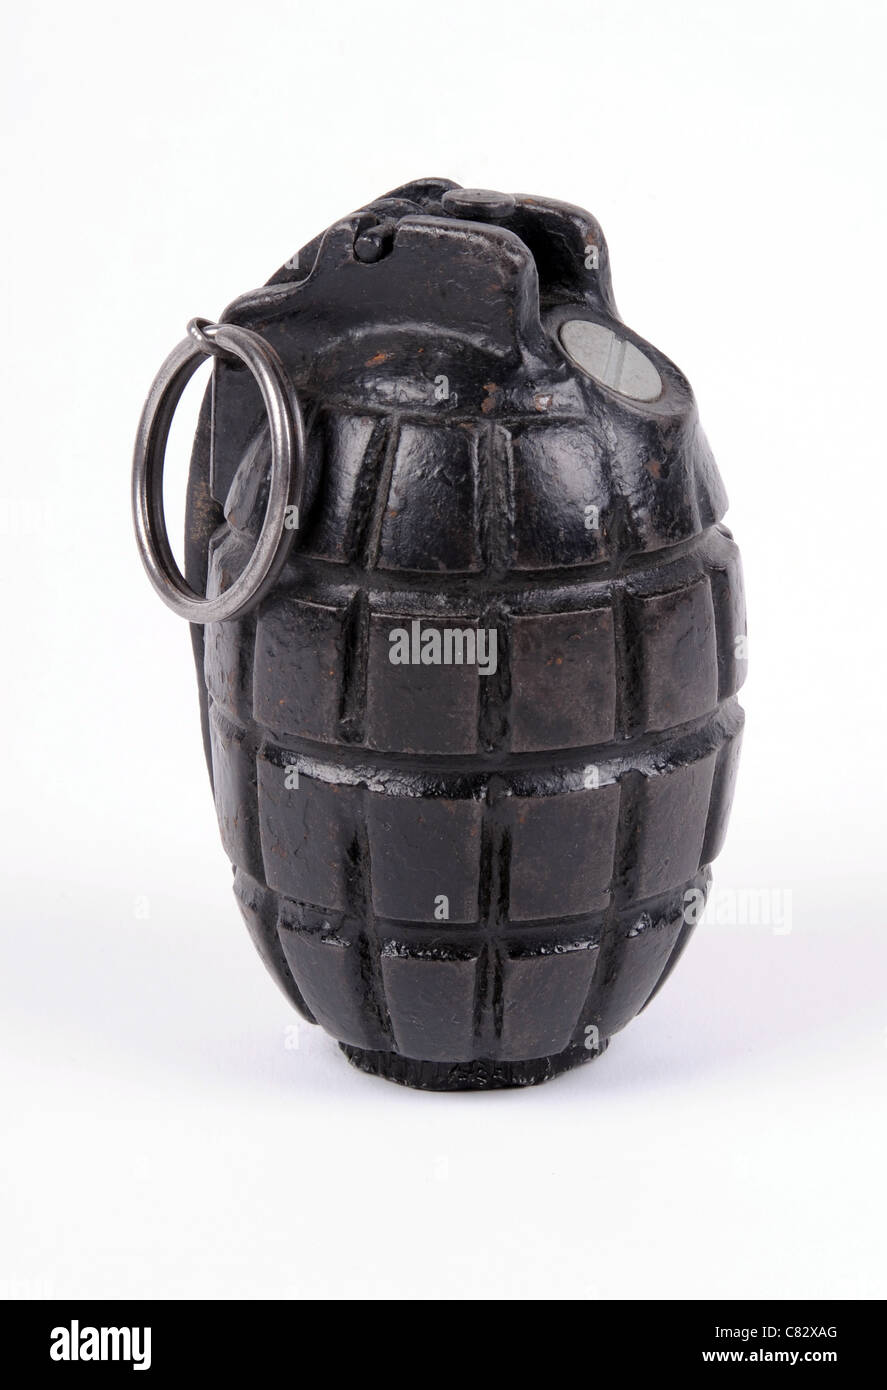 A Mills No.5 Mk.I defensive fragmentation hand grenade or 'Mills bomb' of WWI vintage. - Stock Image